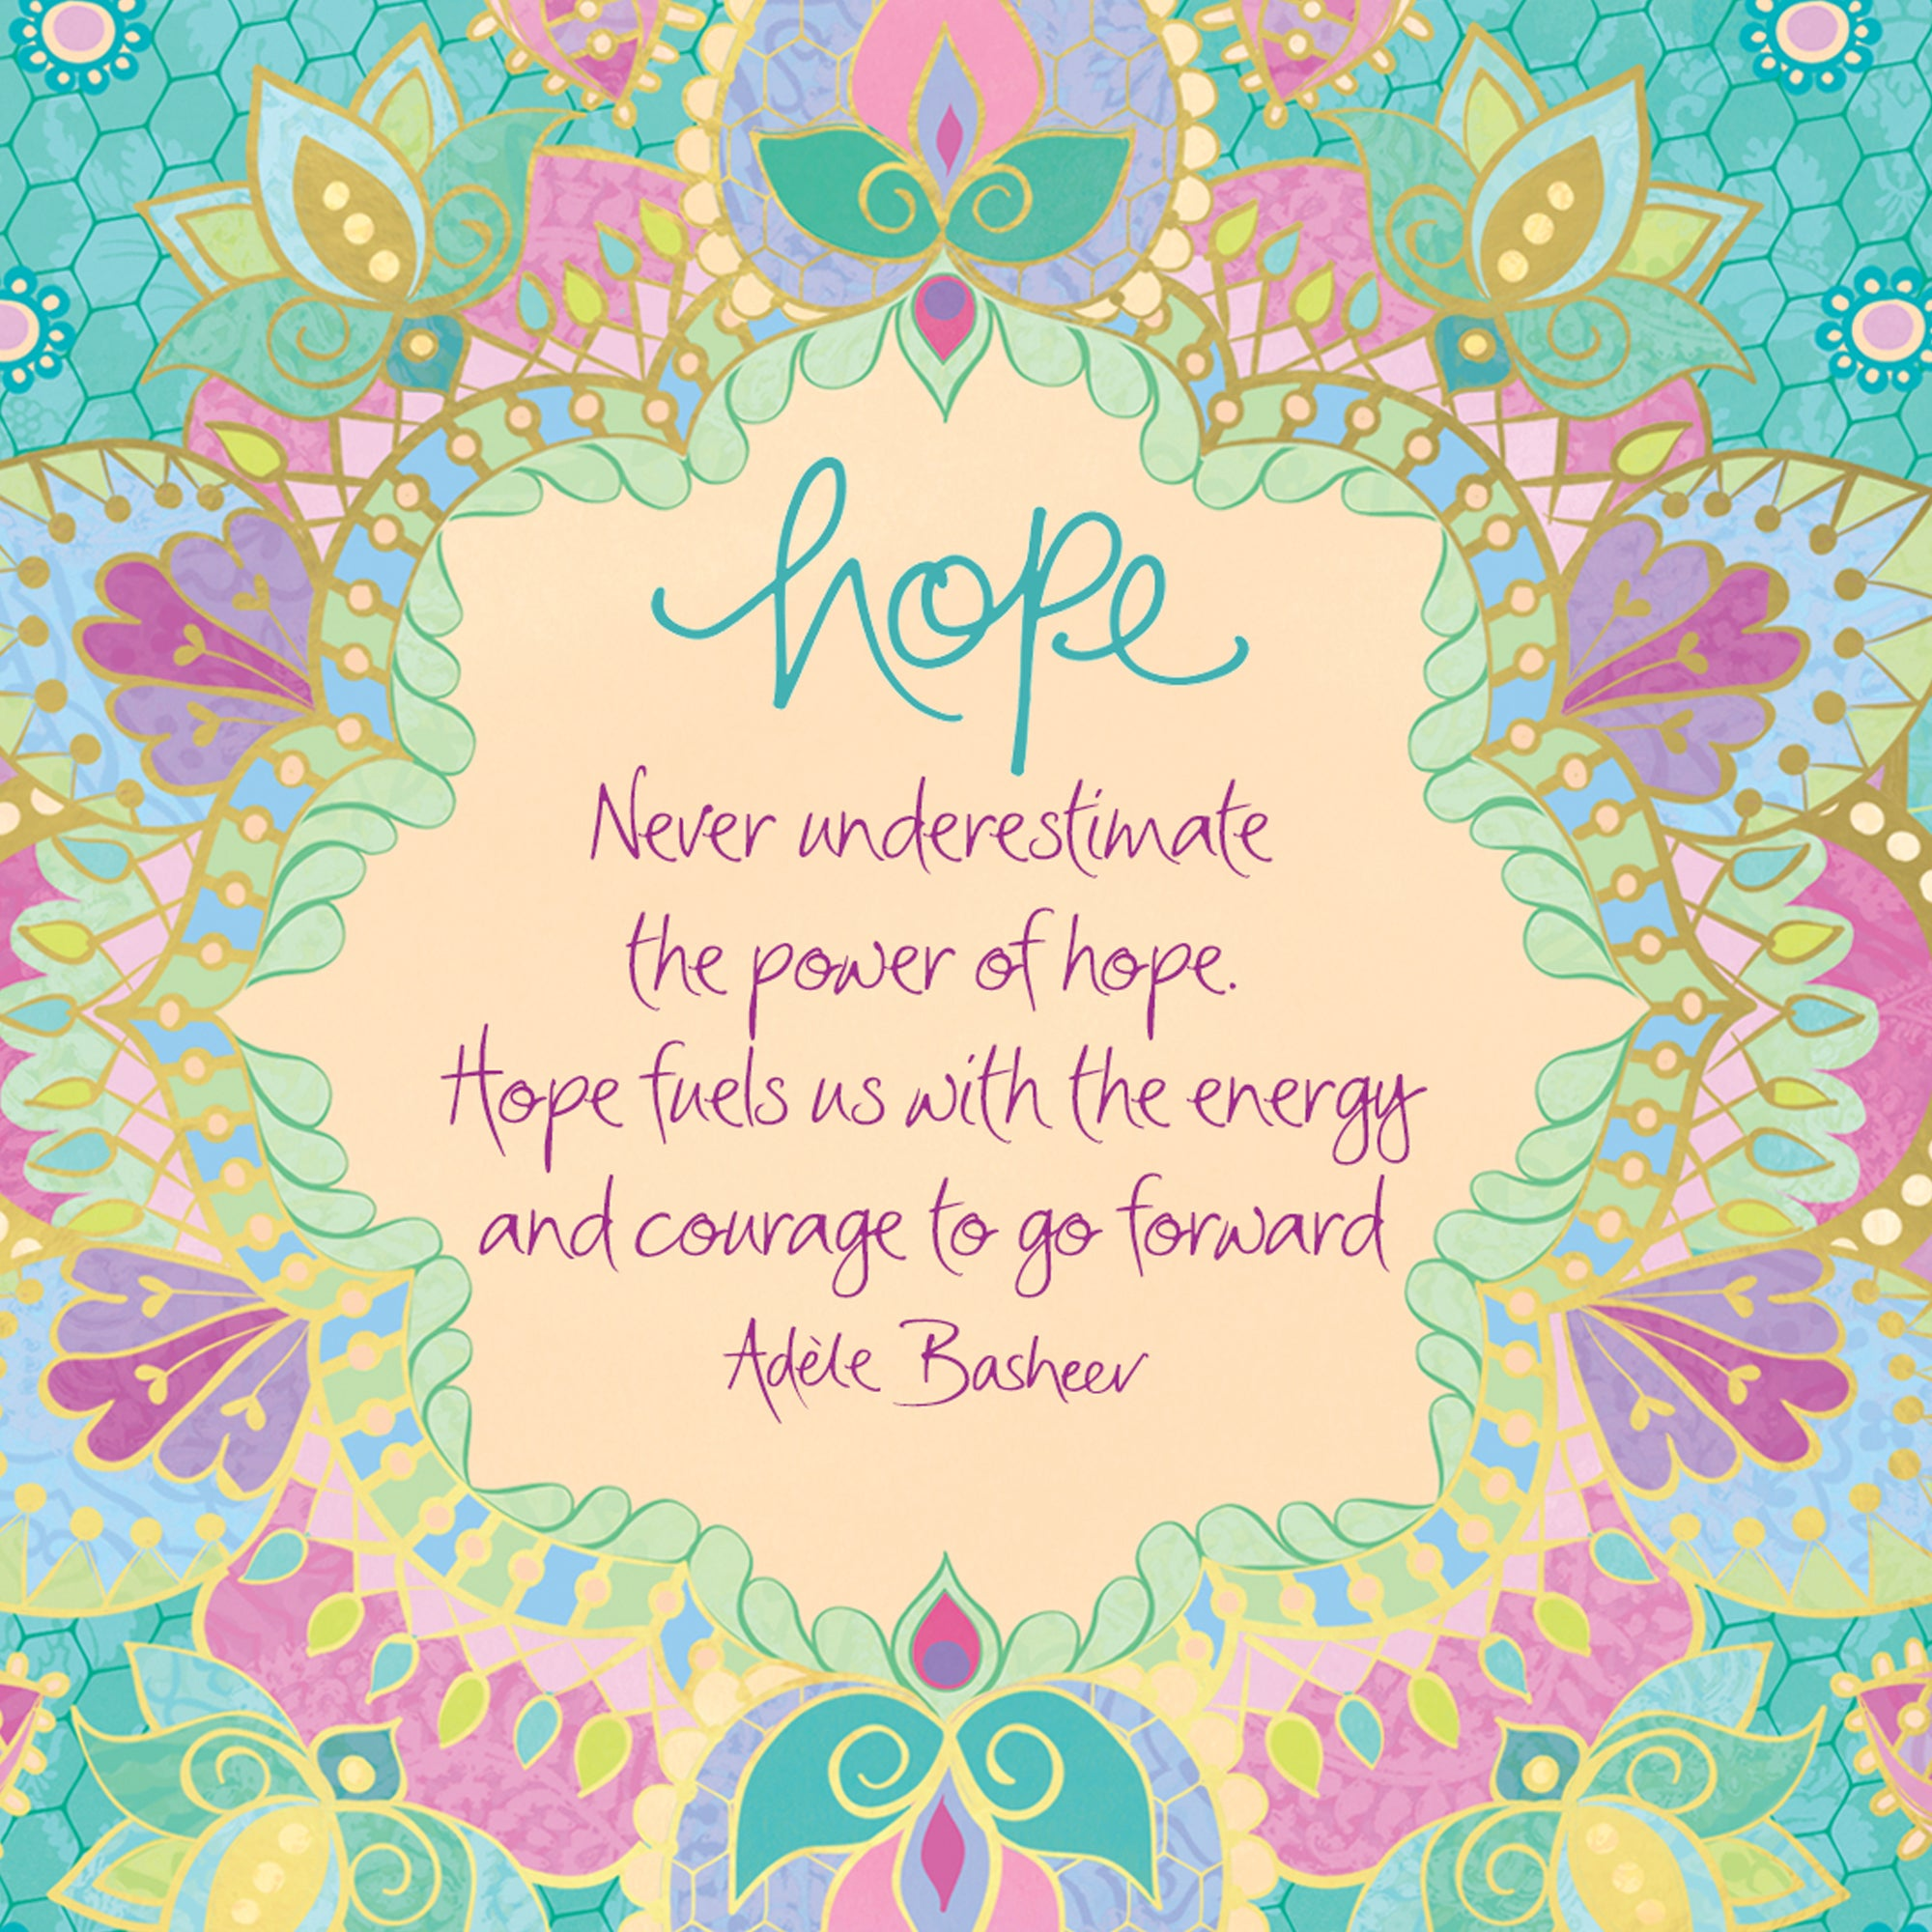 Intrinsic Hope Digital Wallpaper